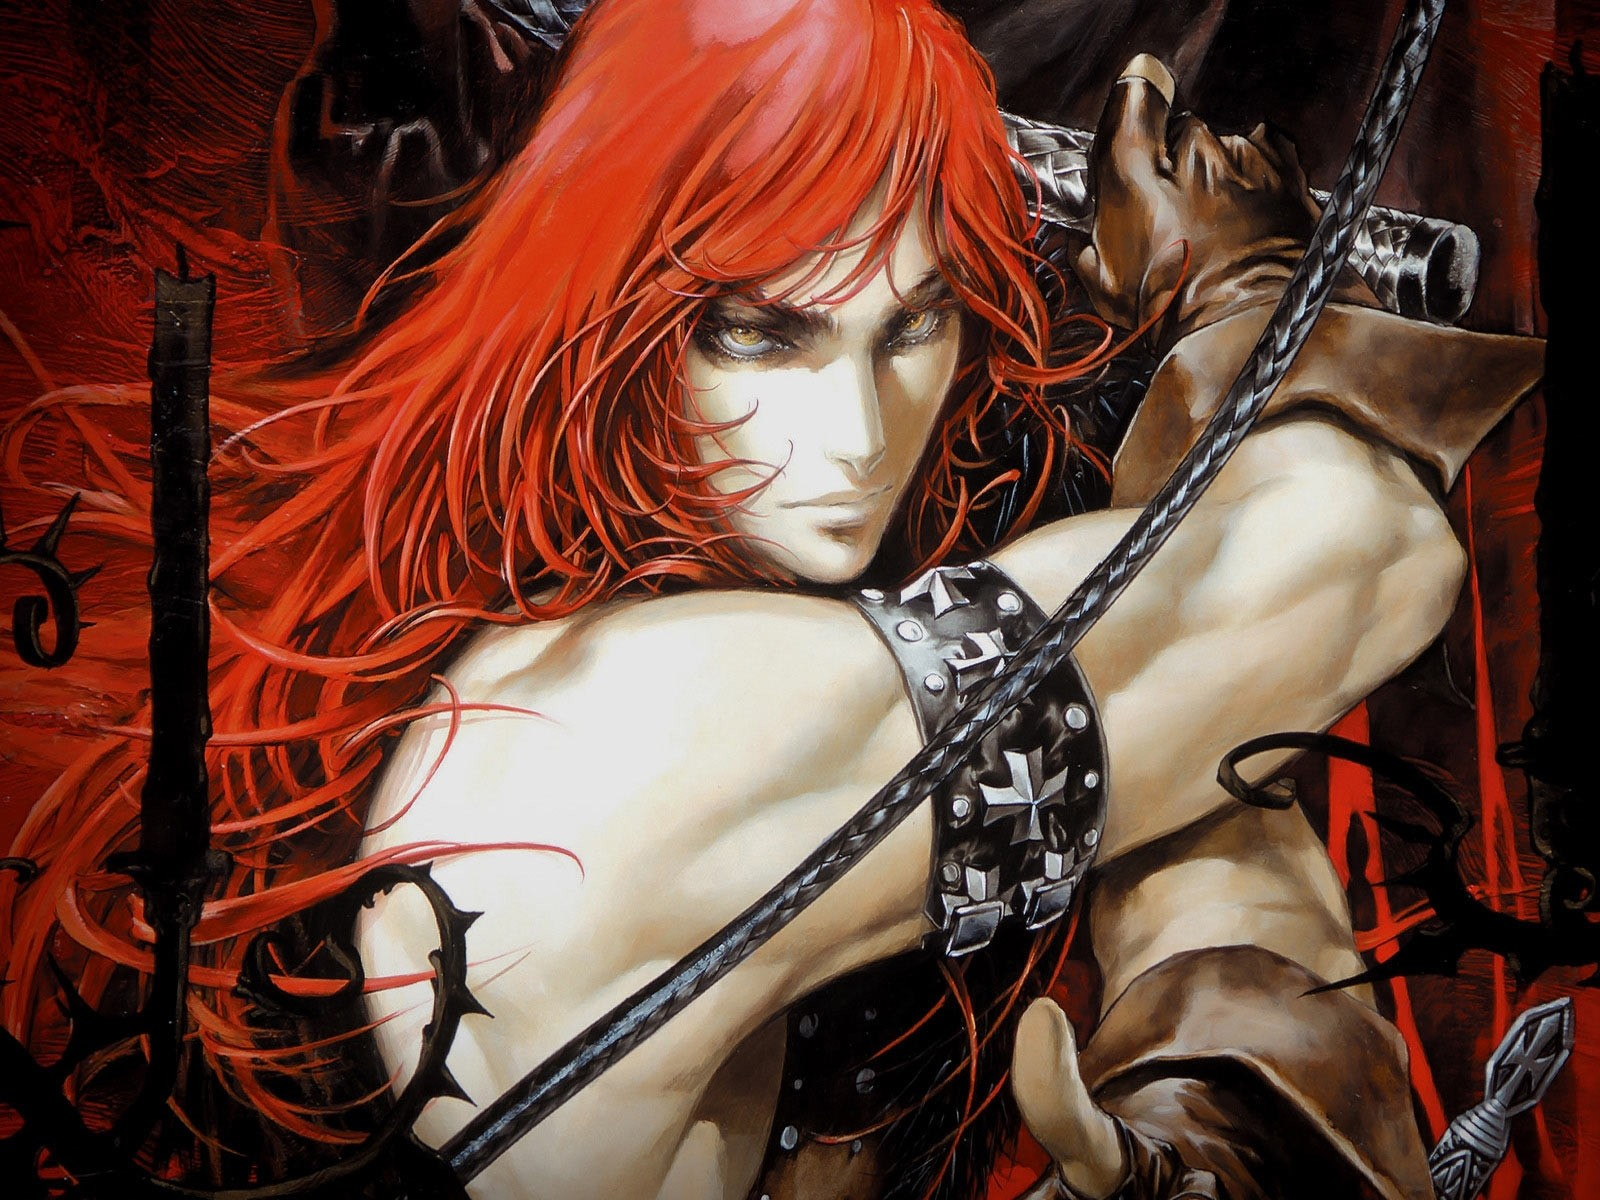 Girly Iphone Home Screen Wallpaper Castlevania Game High Defination Wallpapers All Hd